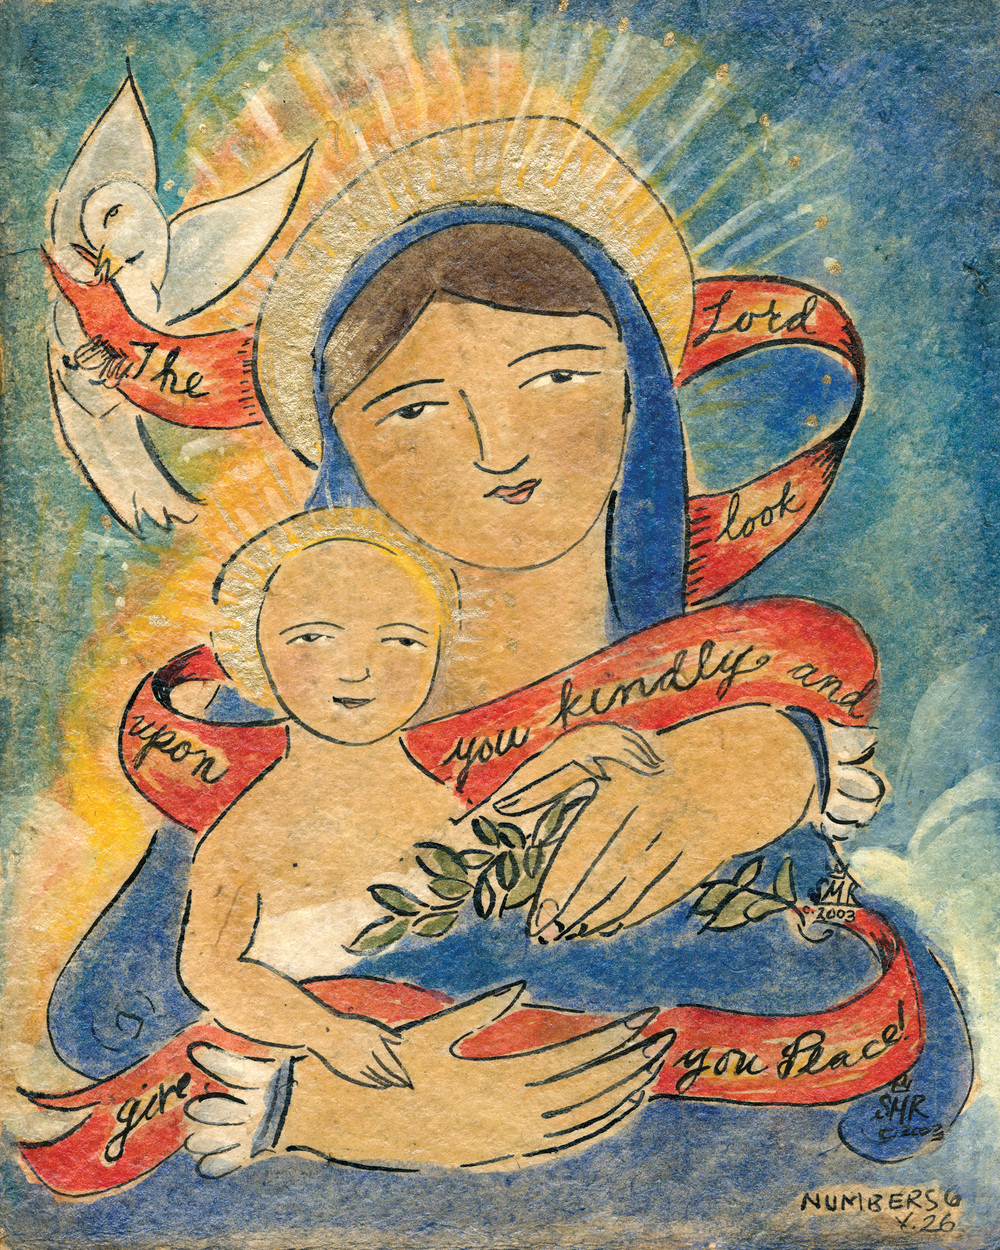 Spir1madonna and child16x20 copy.jpg